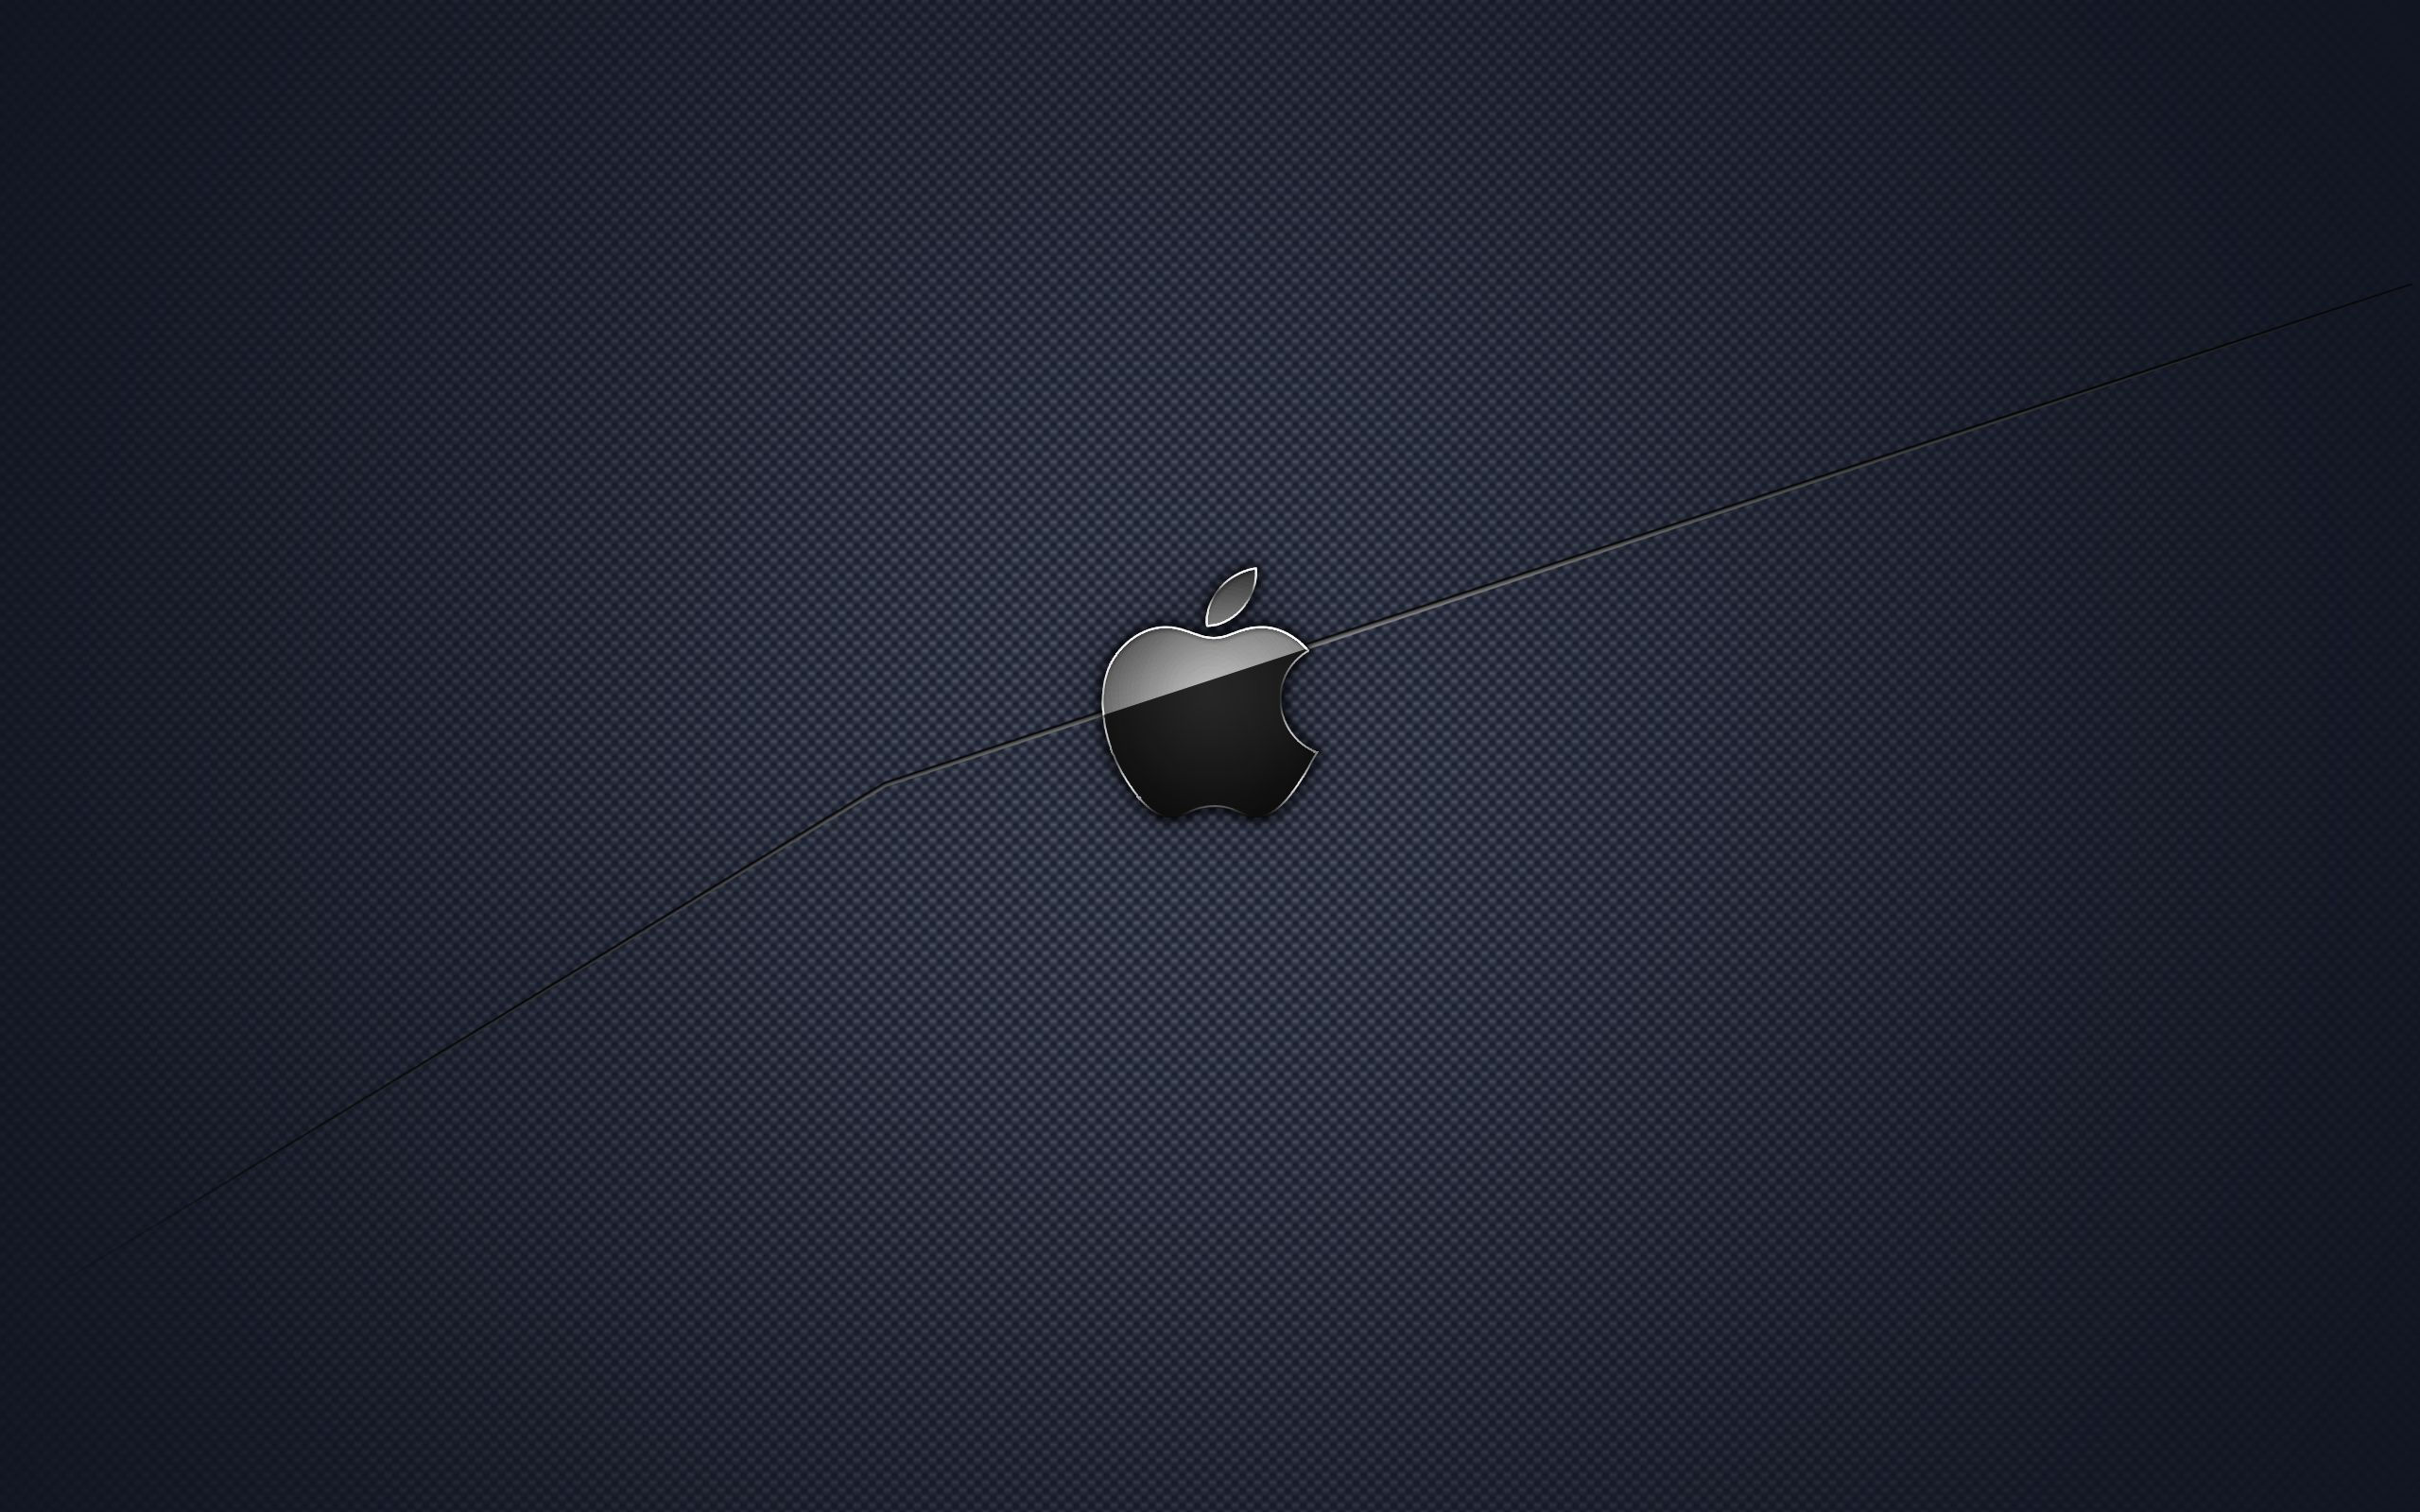 Hd Apple Mac Os X Galaxy Wallpaper High Resolution Full Size Desktop Wallpaper Simple Wallpapers Desktop Wallpaper Simple